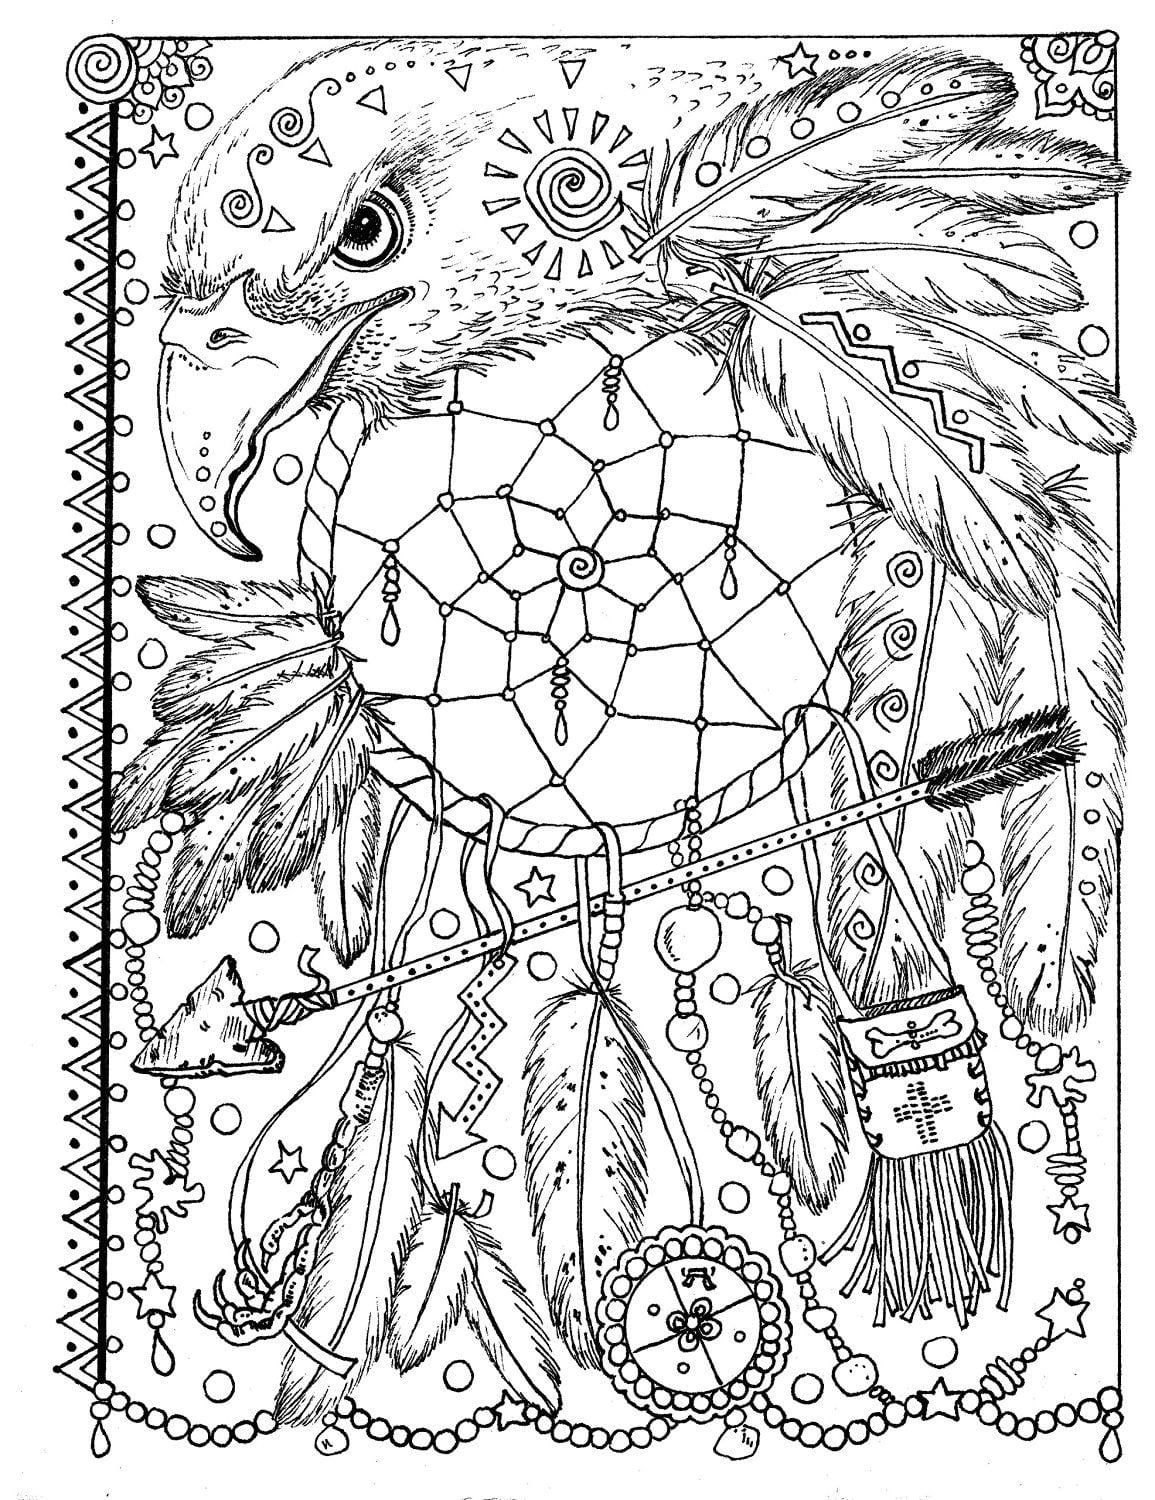 Animal Spirit Dreamcatchers Coloring Fun For All Ages